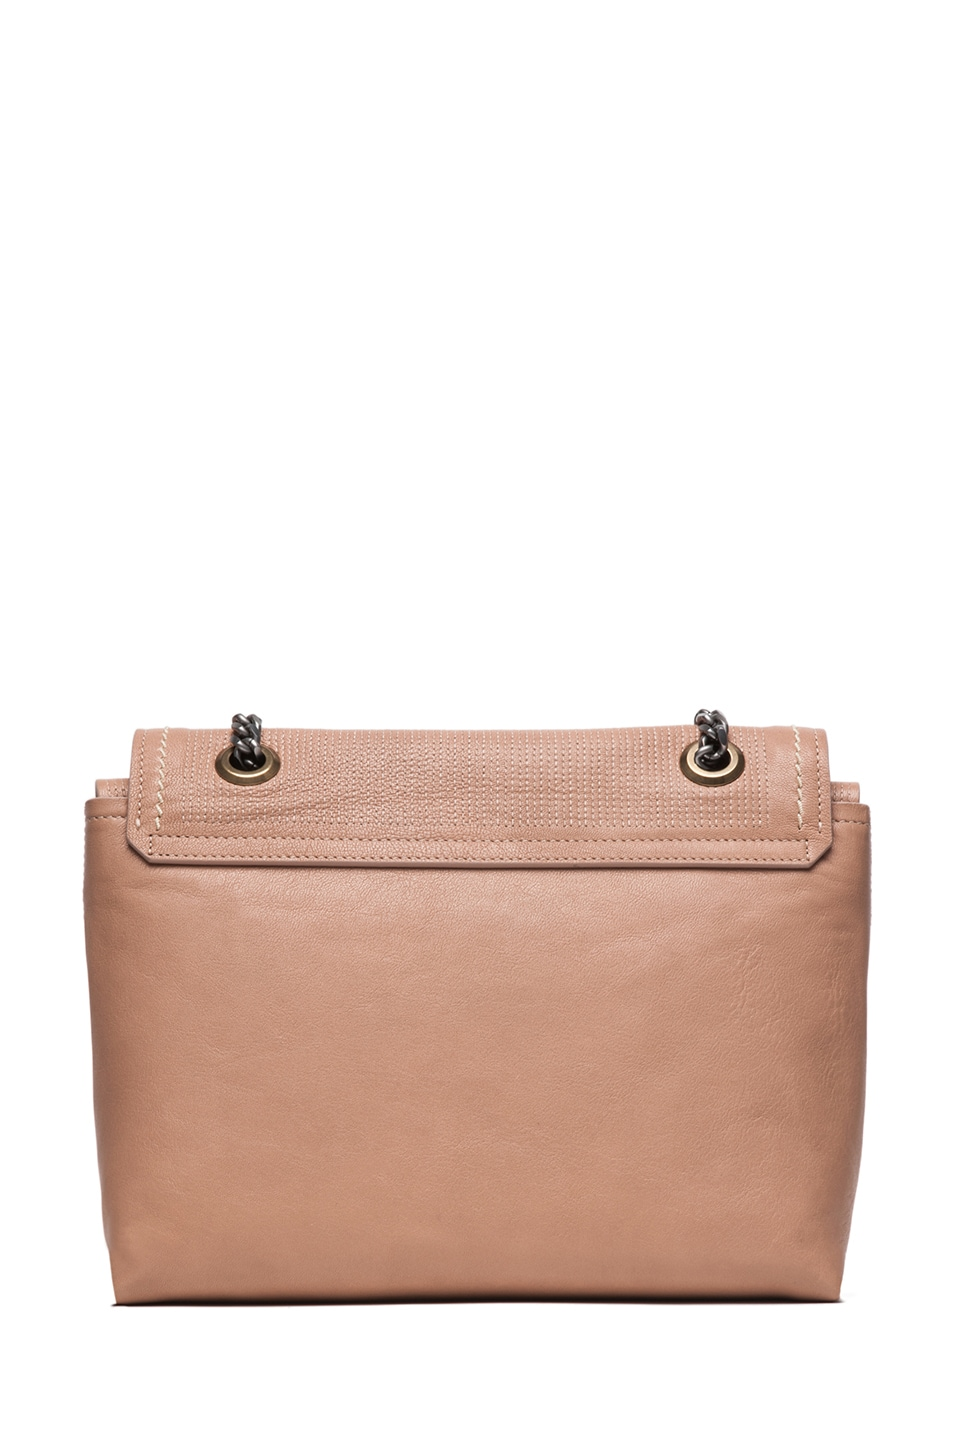 Image 2 of Lanvin Happy Bag in Beige